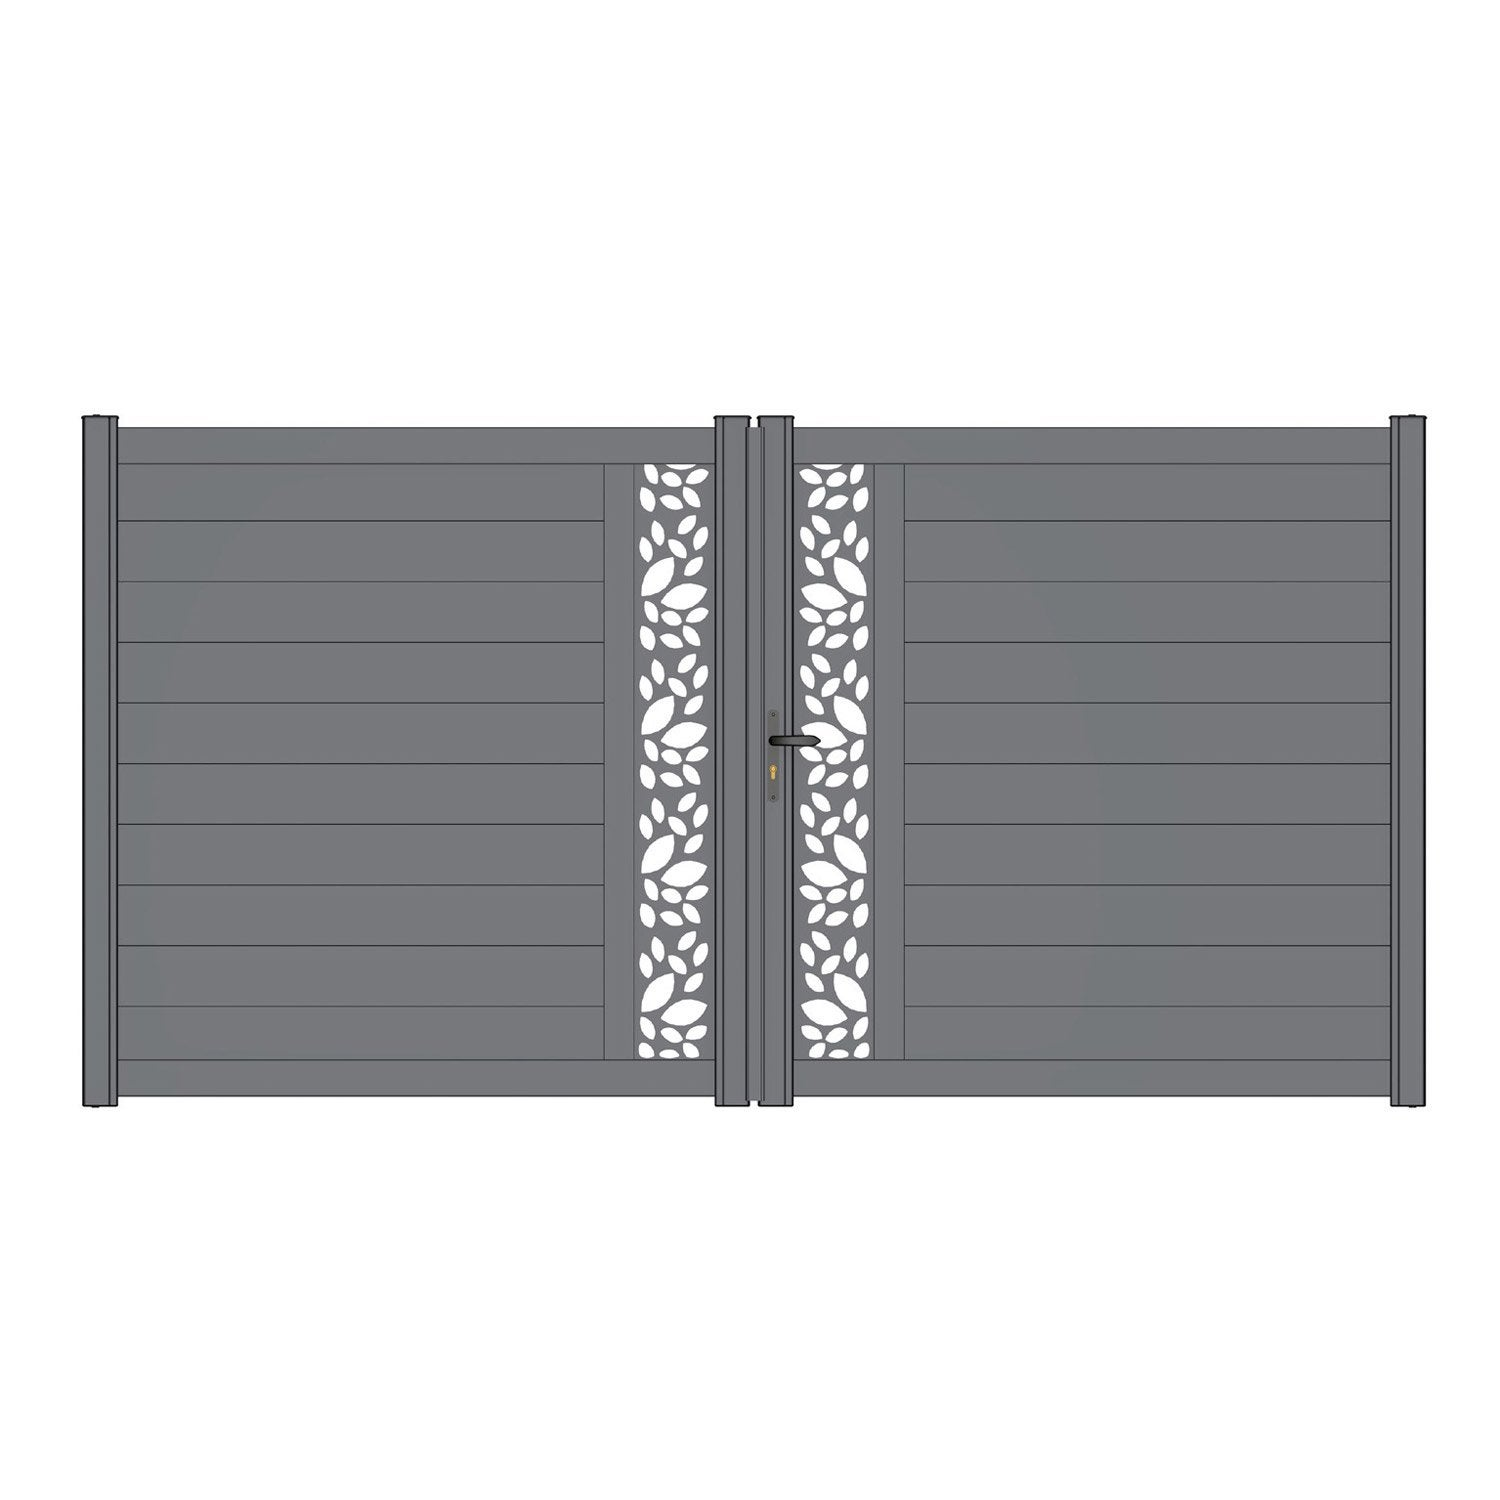 Portail battant aluminium d cor feuille mix it gris naterial cm - Feuille stratifie leroy merlin ...